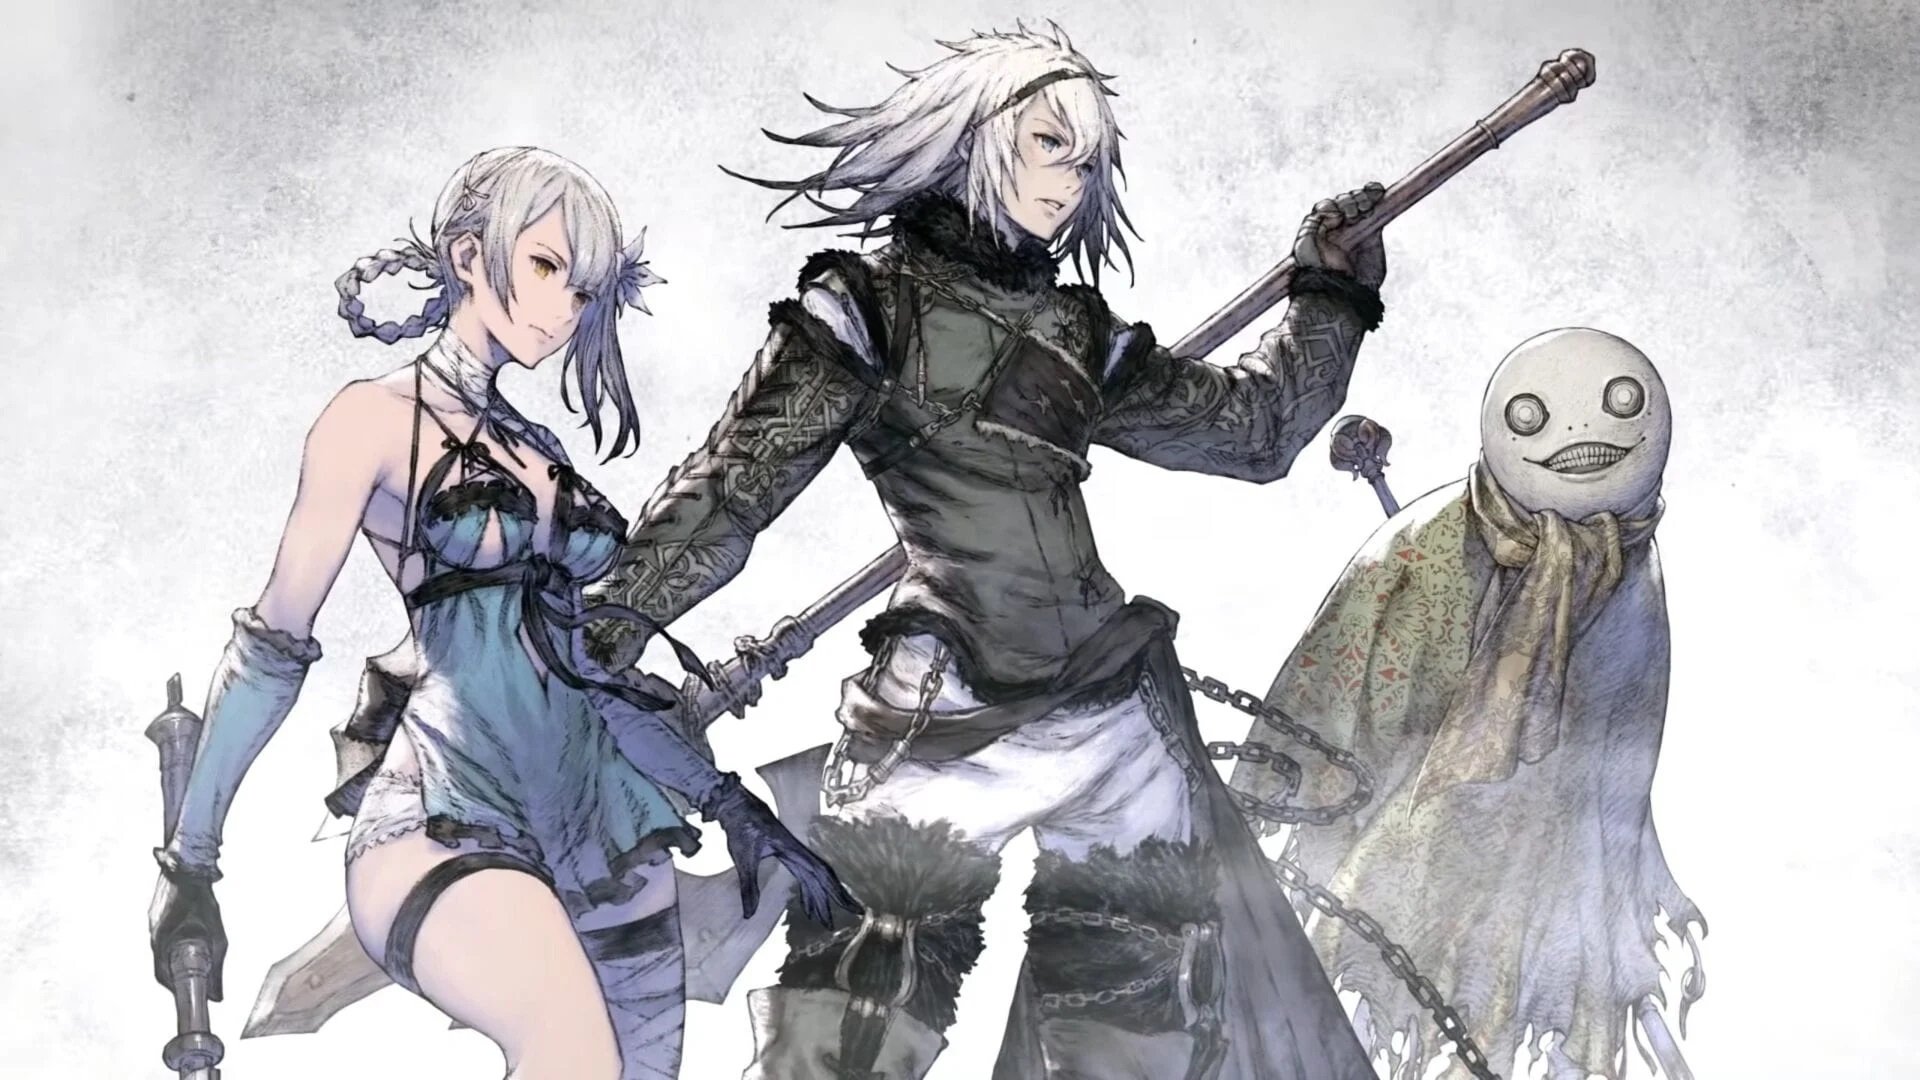 NieR Replicant artwork